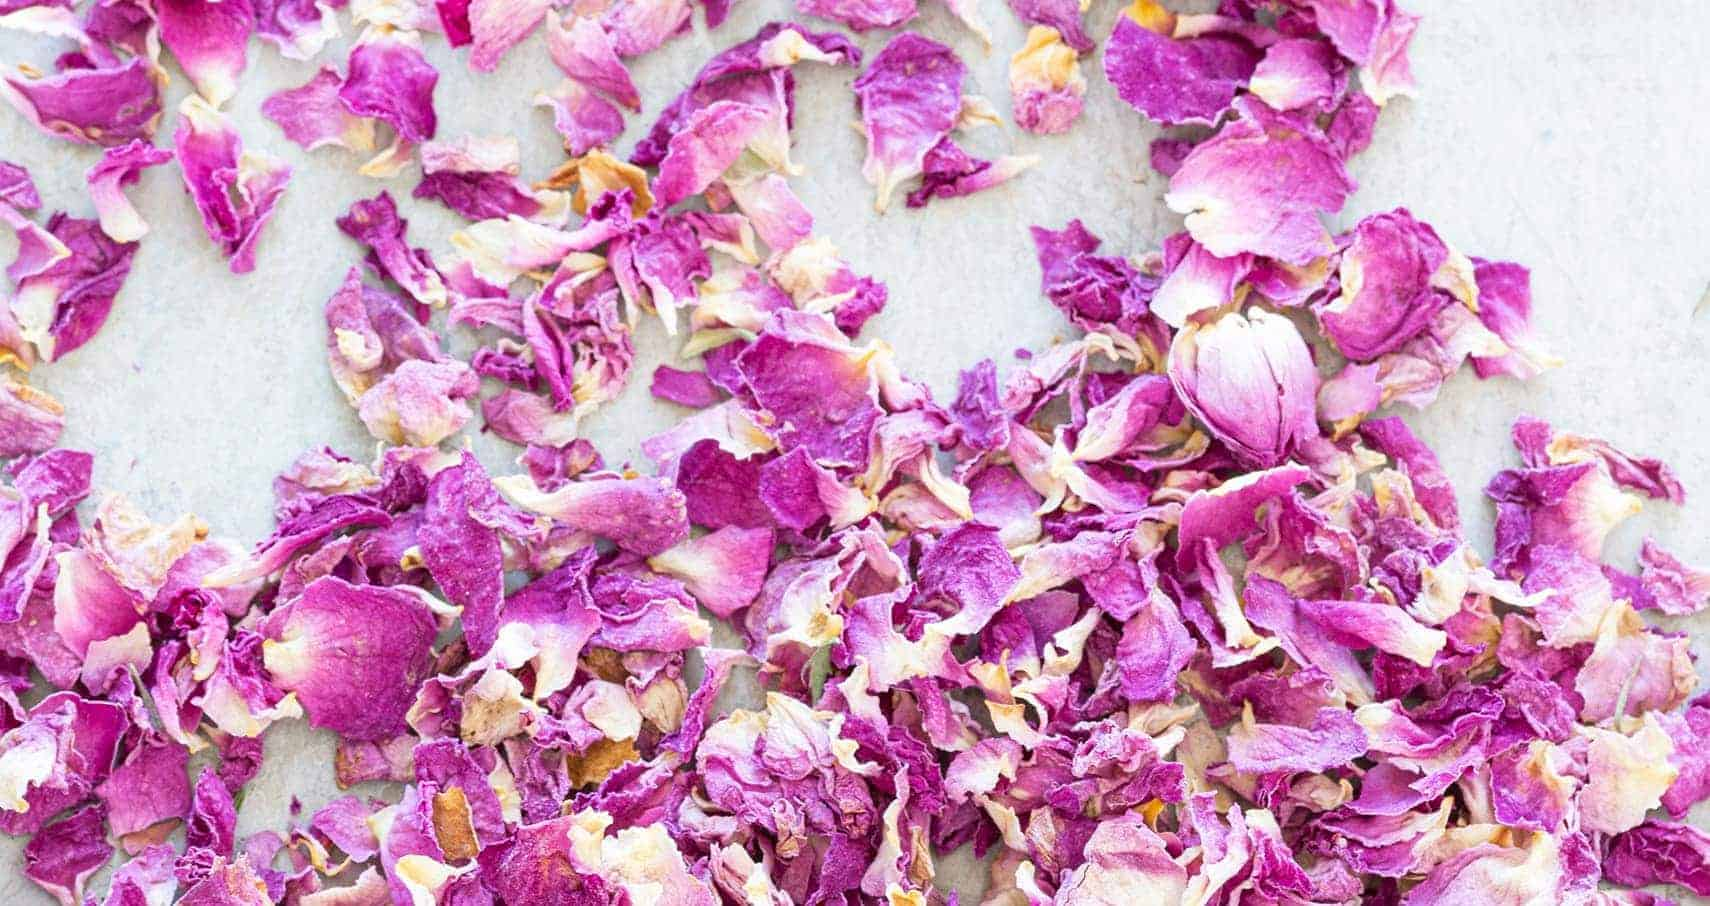 How to Use Rose Petals in Sydney